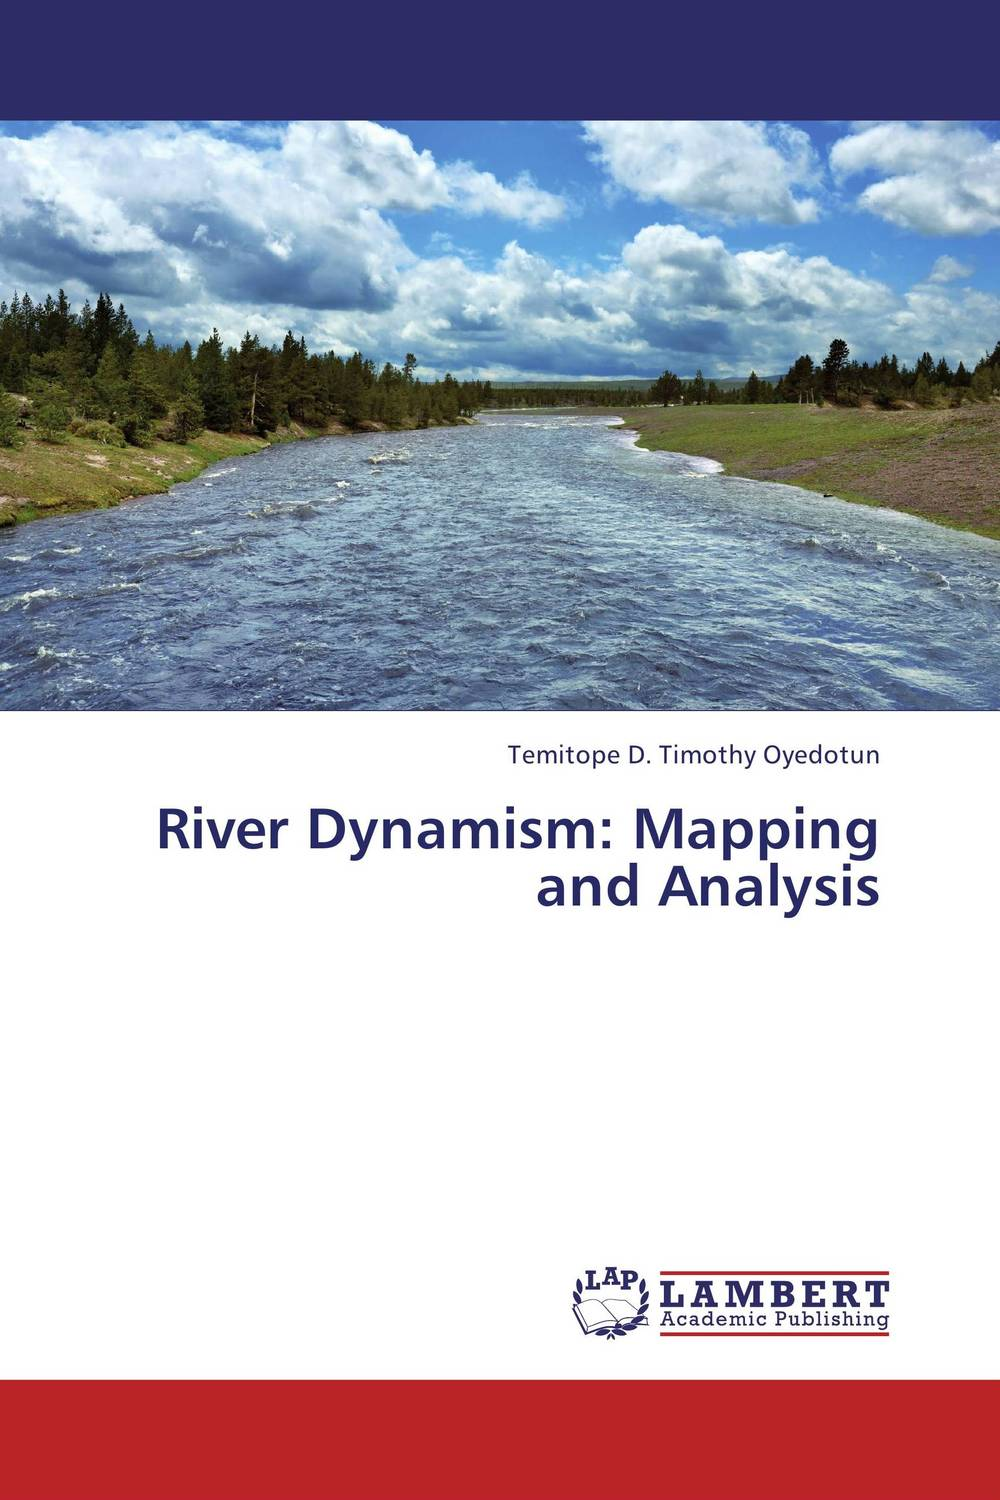 River Dynamism: Mapping and Analysis